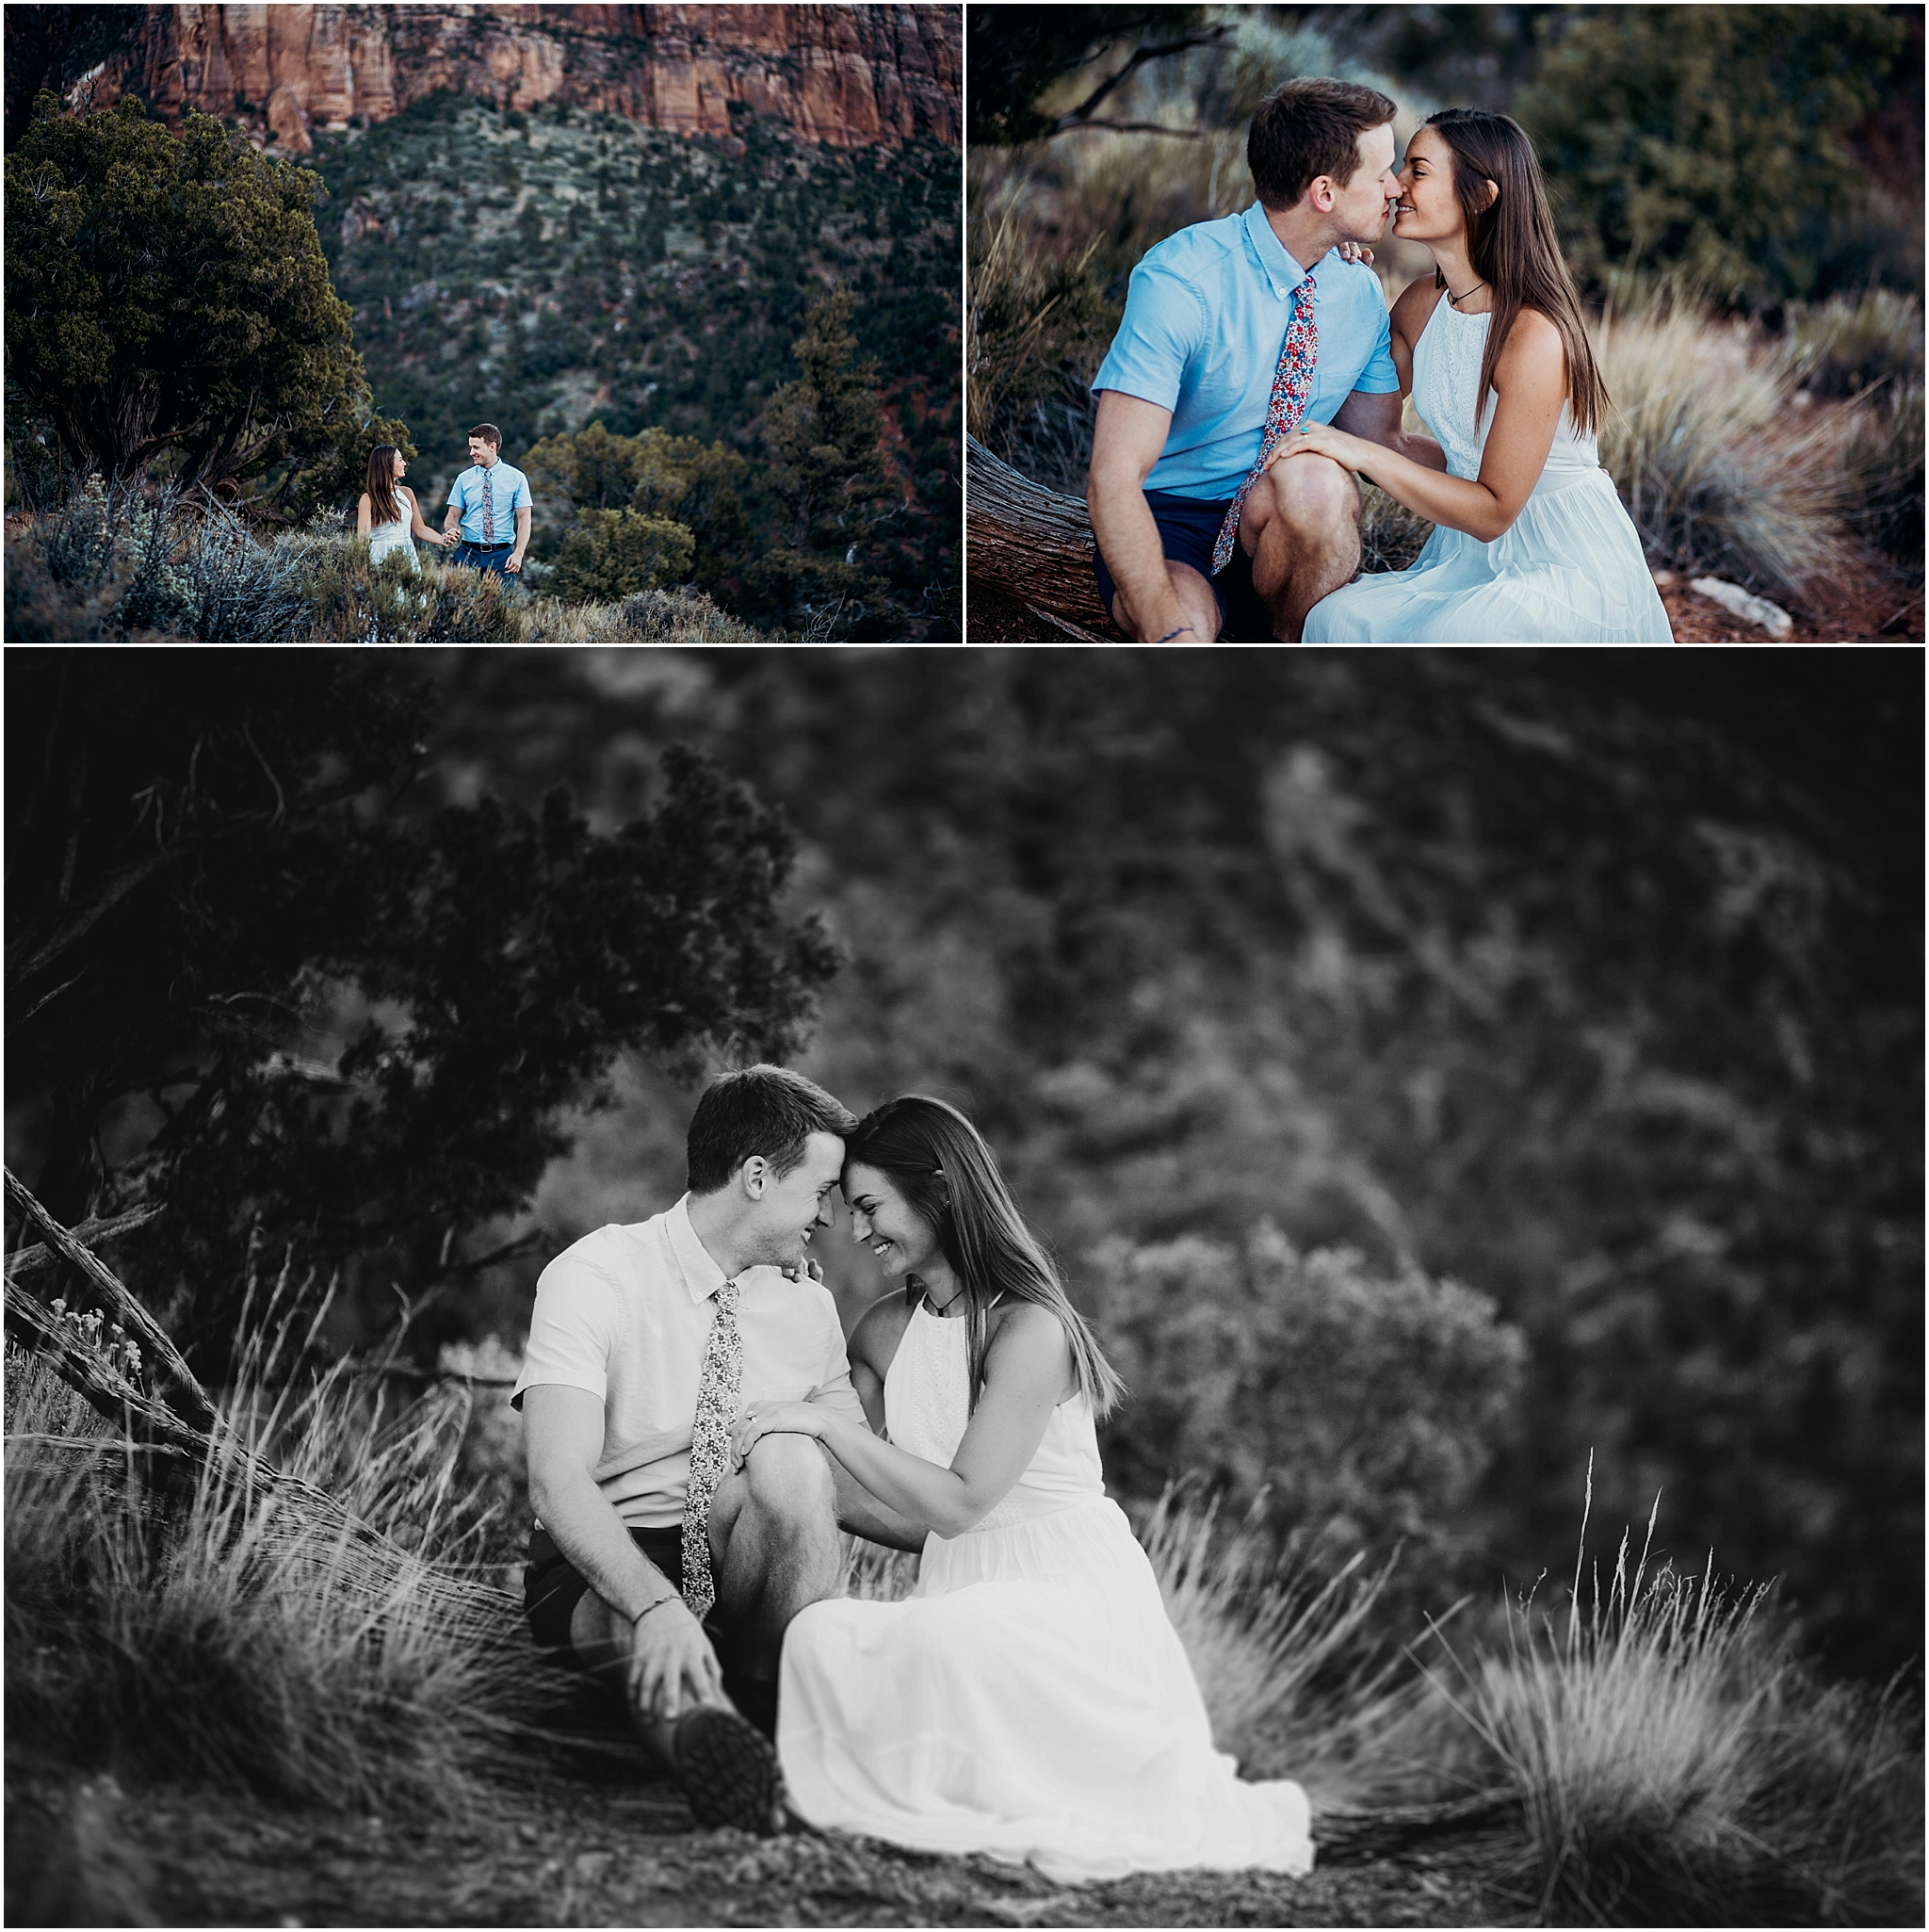 zion national park adventure engagement session zion portraits utah photographer arizona photographer 12.jpg